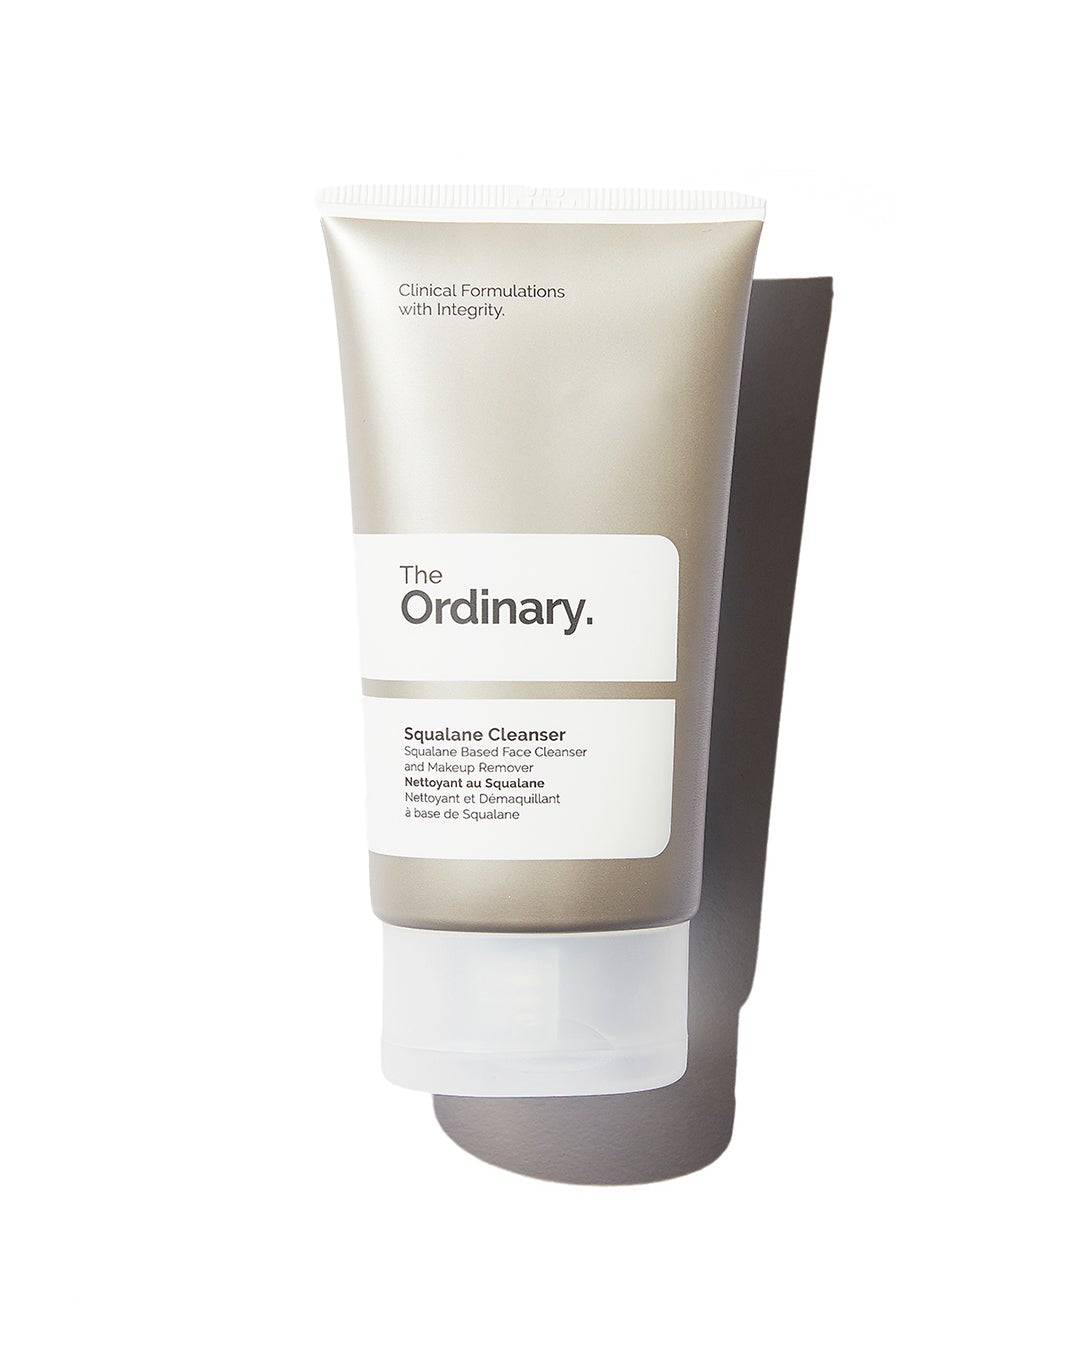 The Ordinary Squalene Cleanser in silver tube with white label on white background